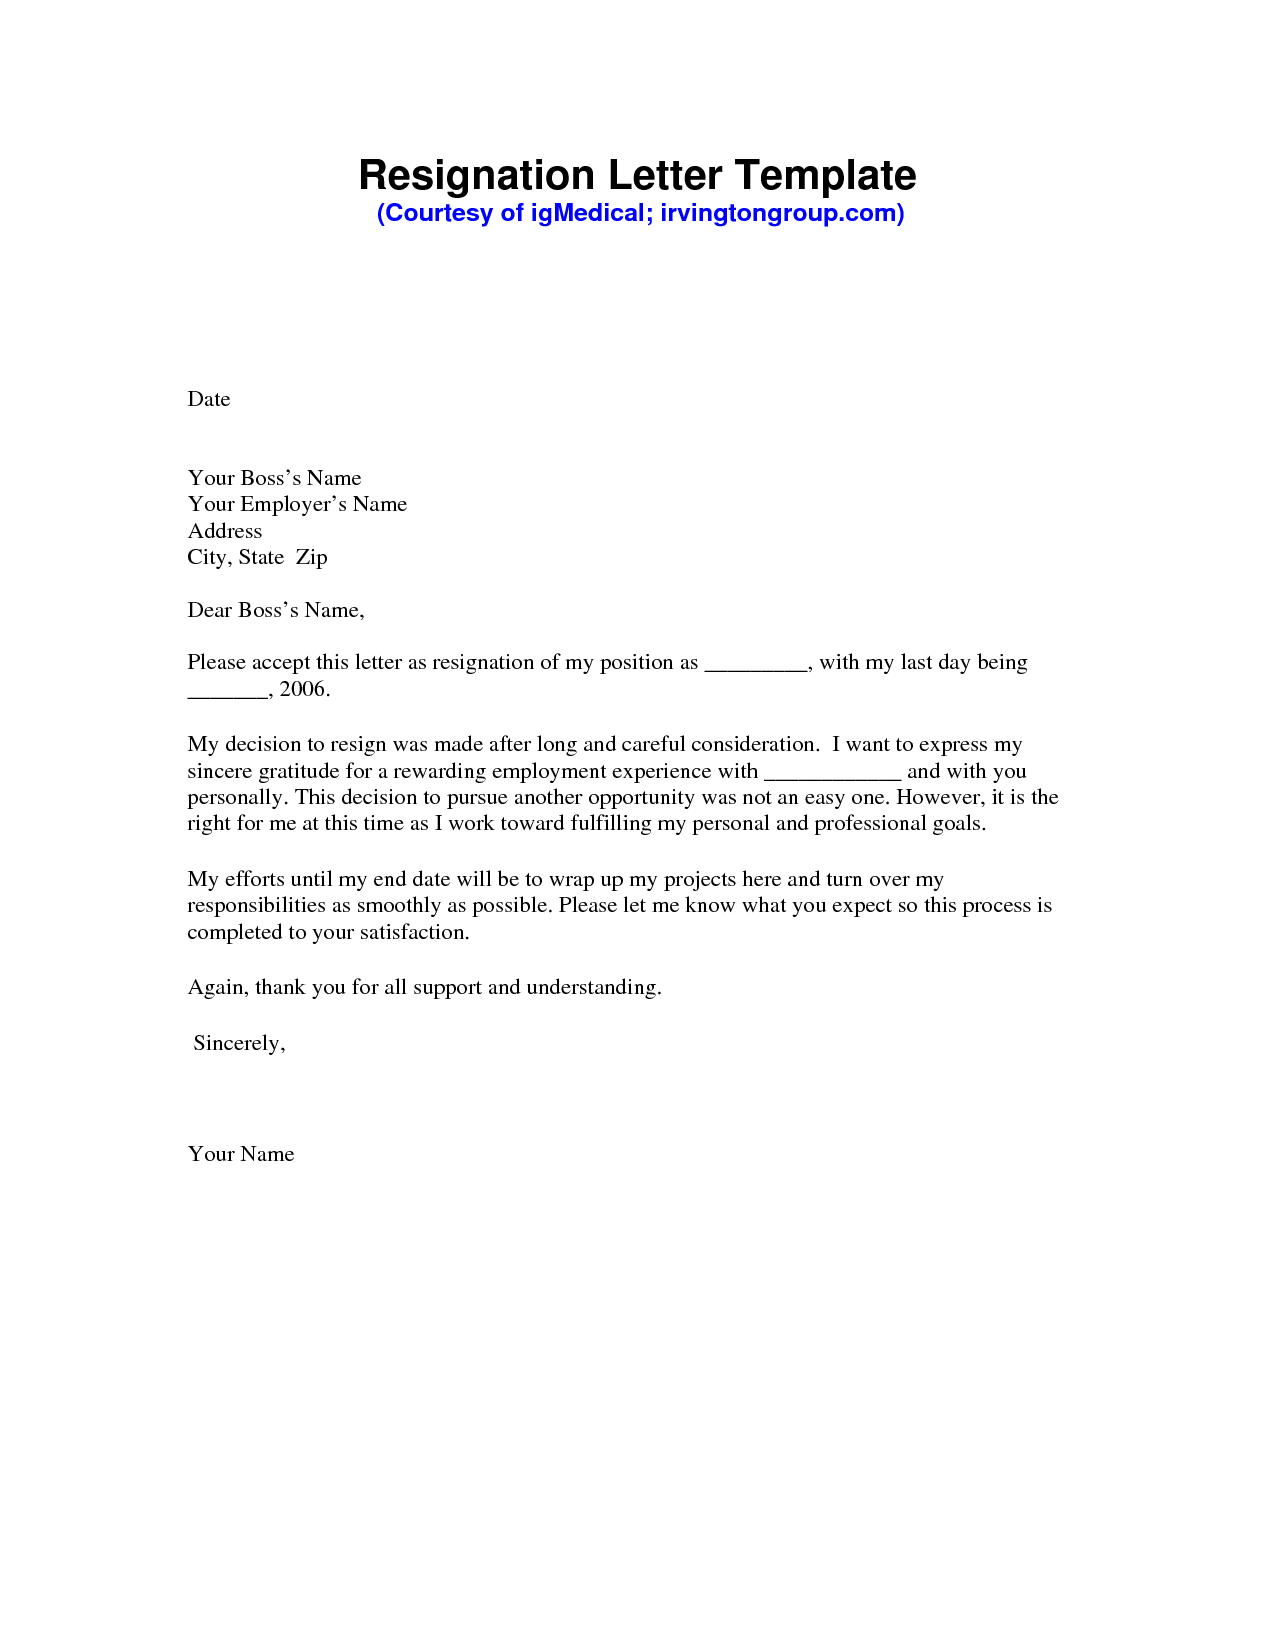 Professional Resignation Letter Template - Resignation Letter Sample Pdf Resignation Letter